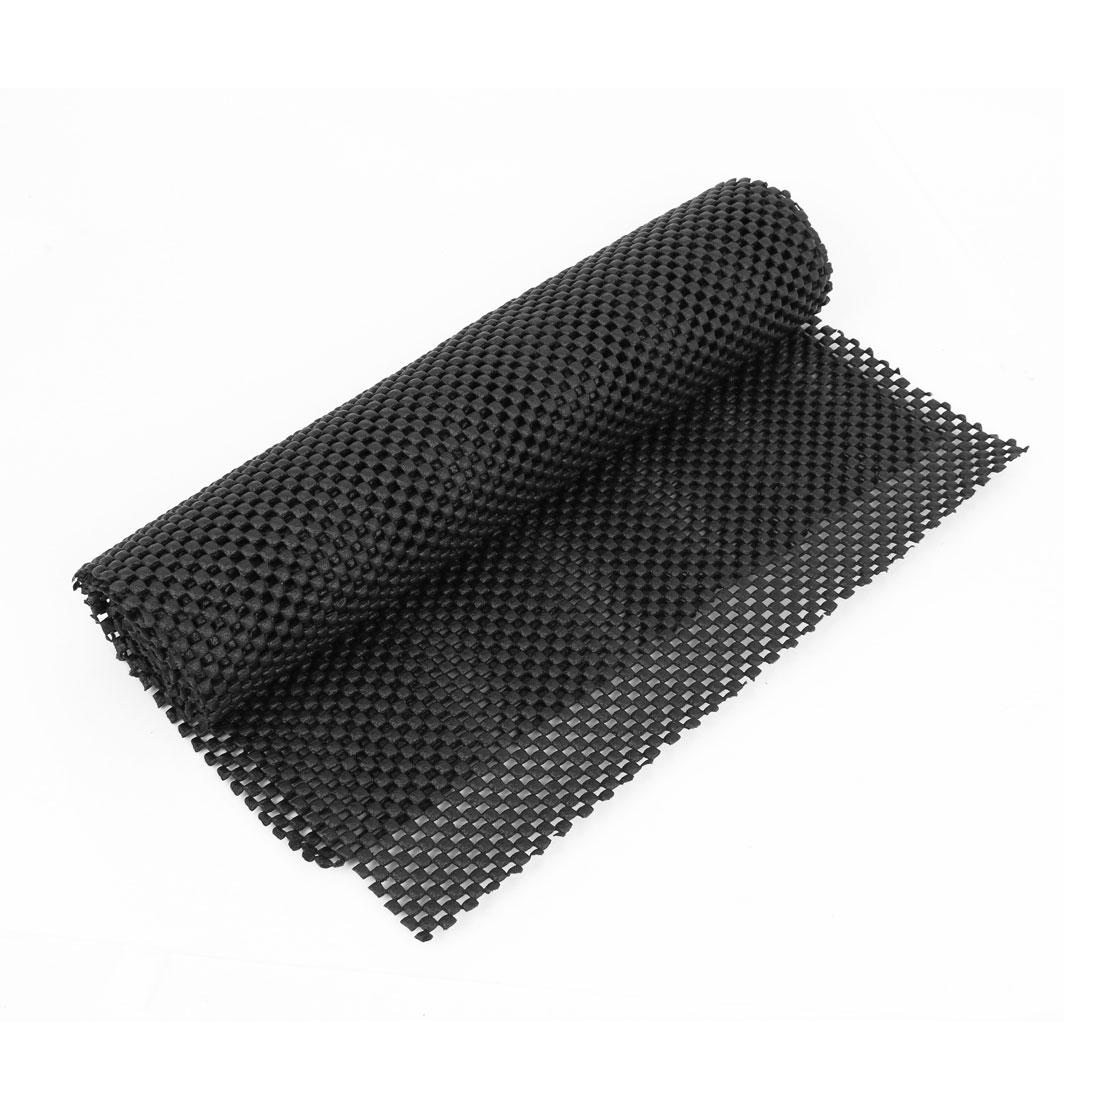 130cm x 30cm Black Soft Foam Tail Box Anti-skid Pad Cushion for Auto Car